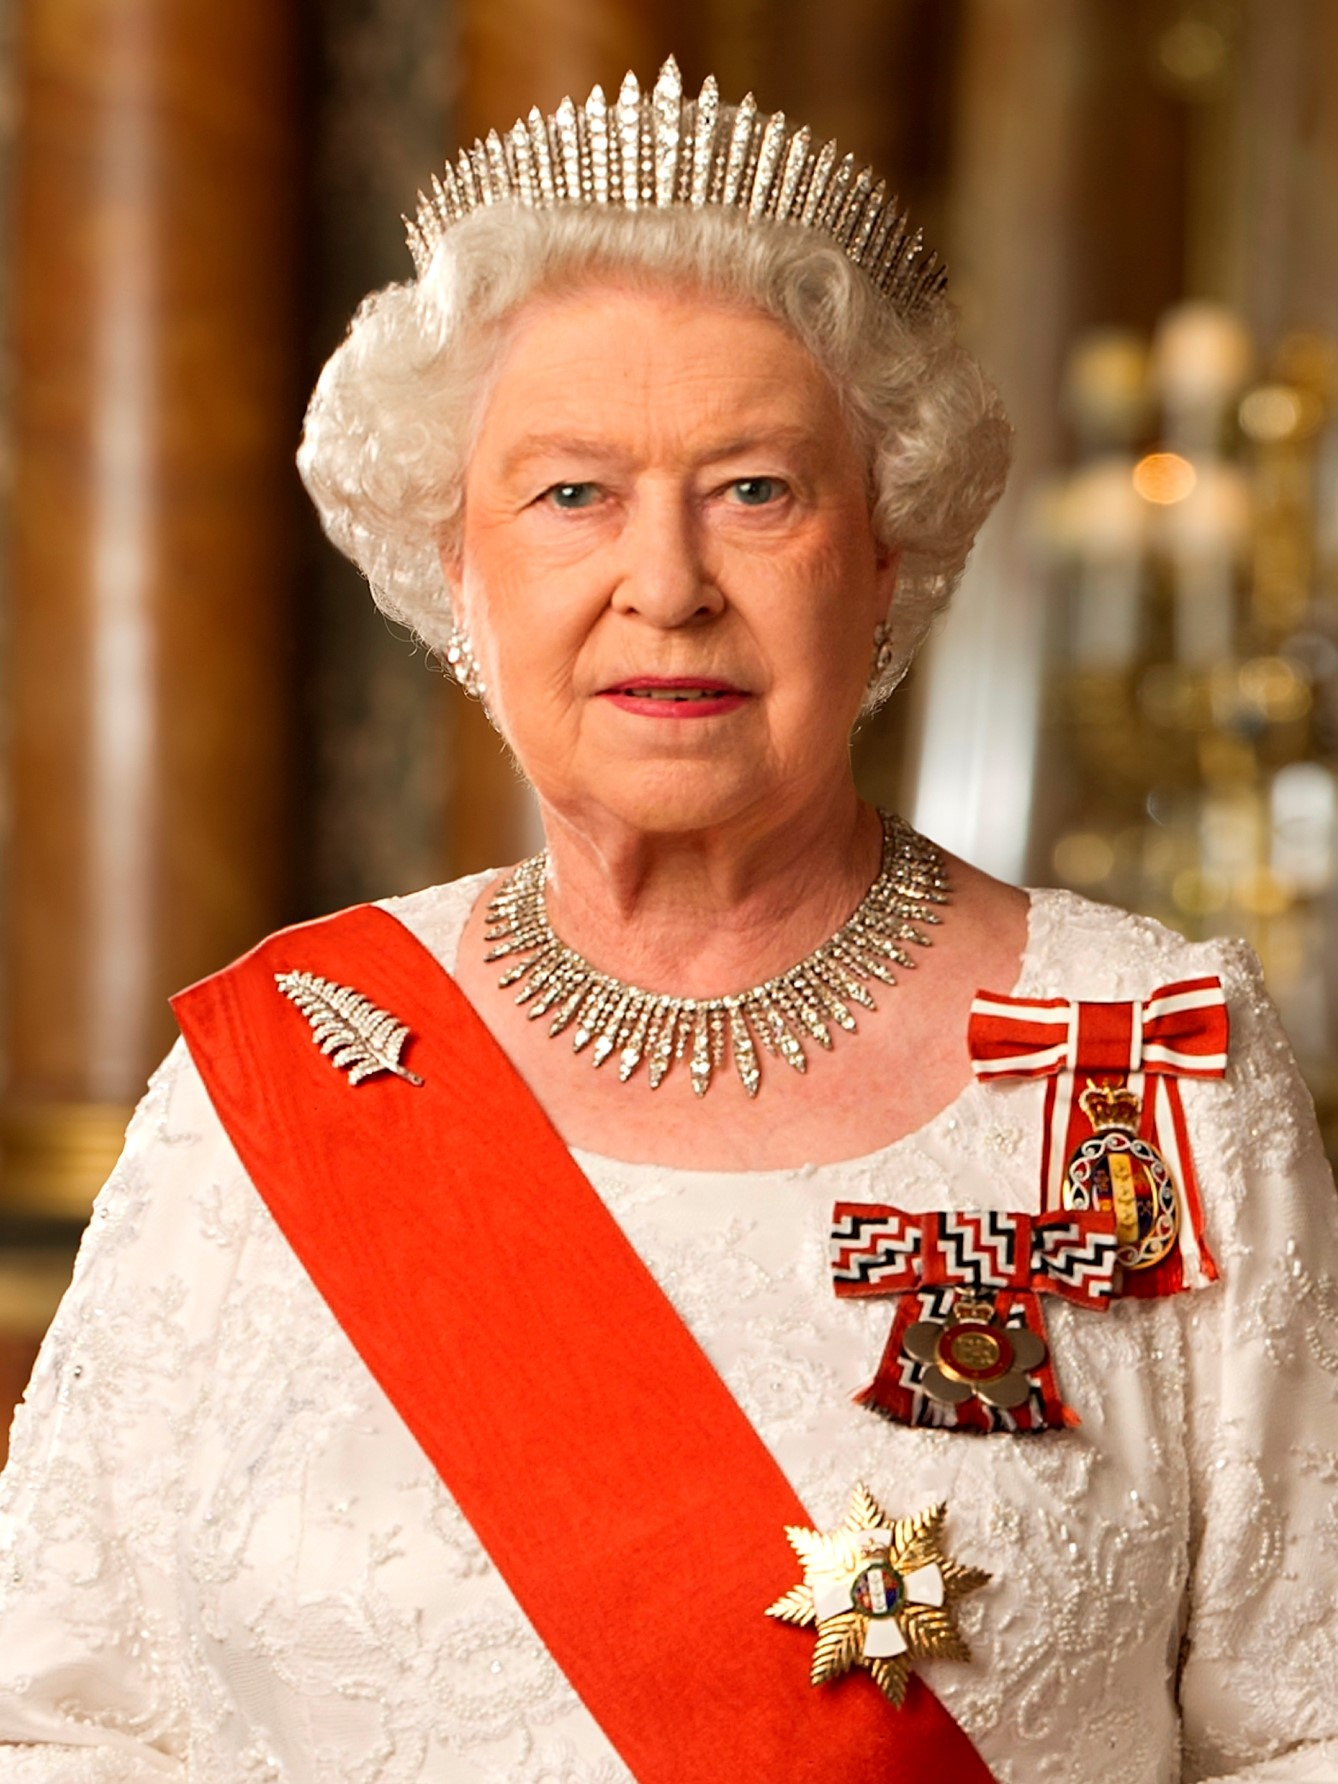 File:Queen Elizabeth II of New Zealand (cropped).jpg - Wikimedia Commons